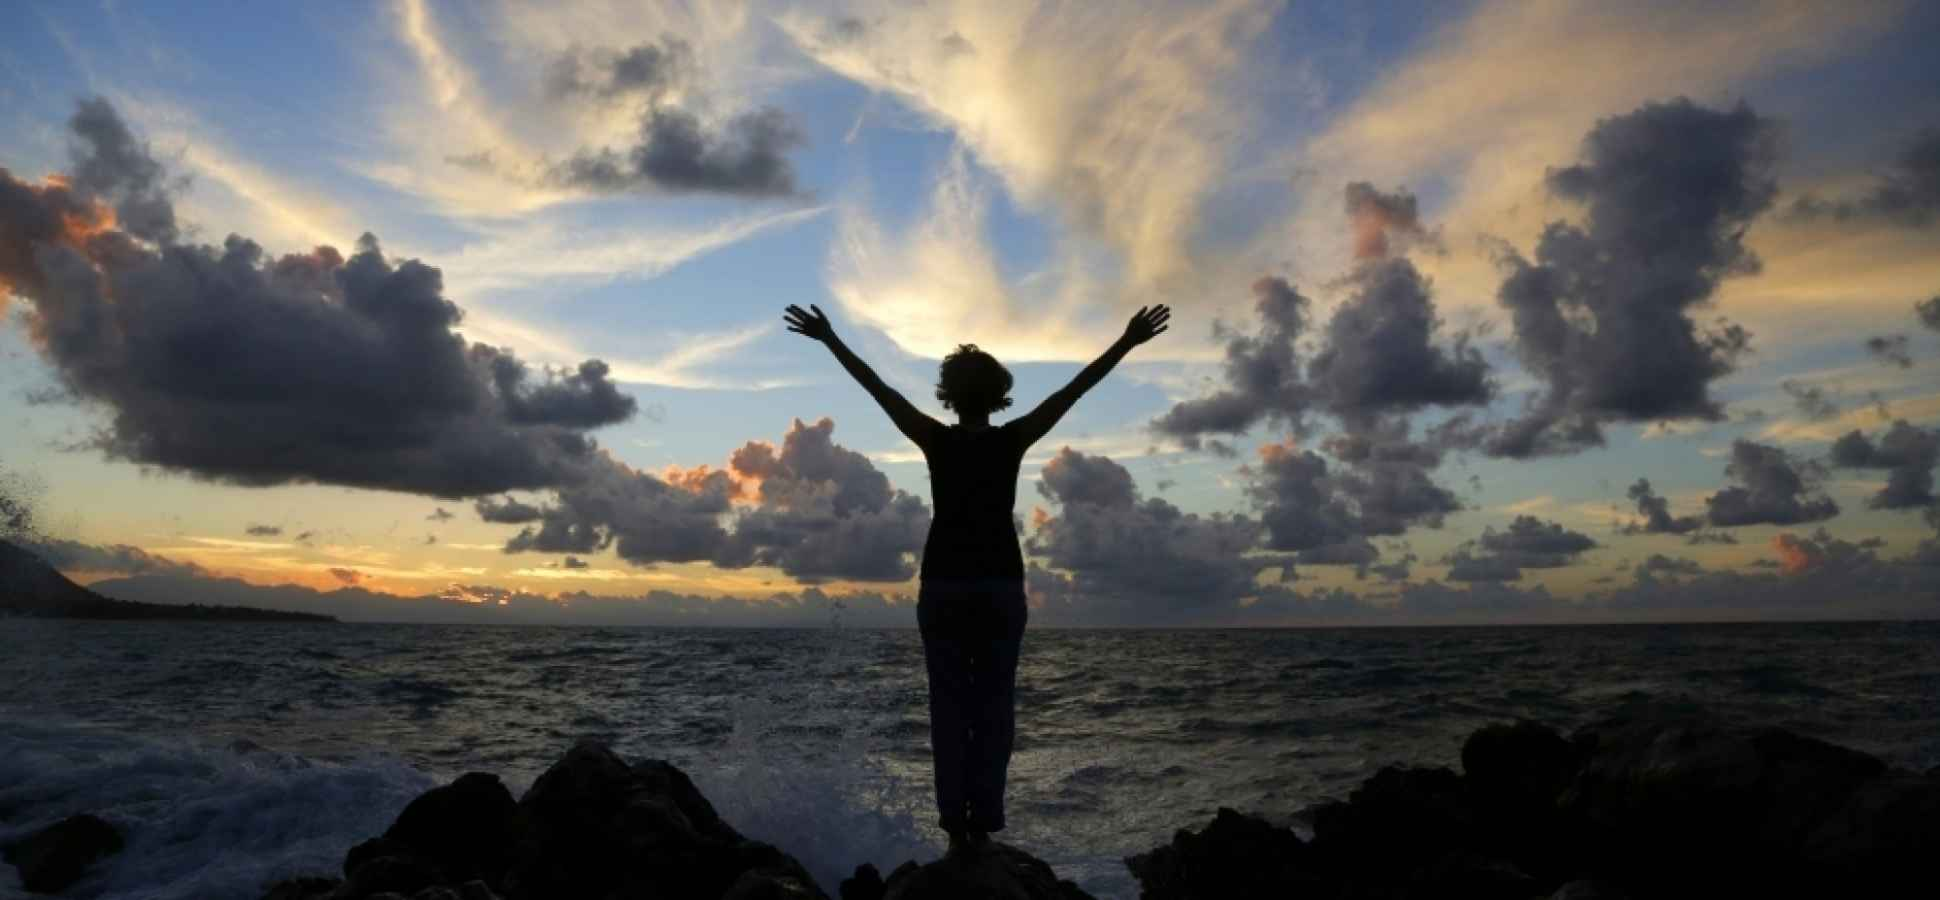 10 Simple Ways You Can Make Your Life Way More Awesome